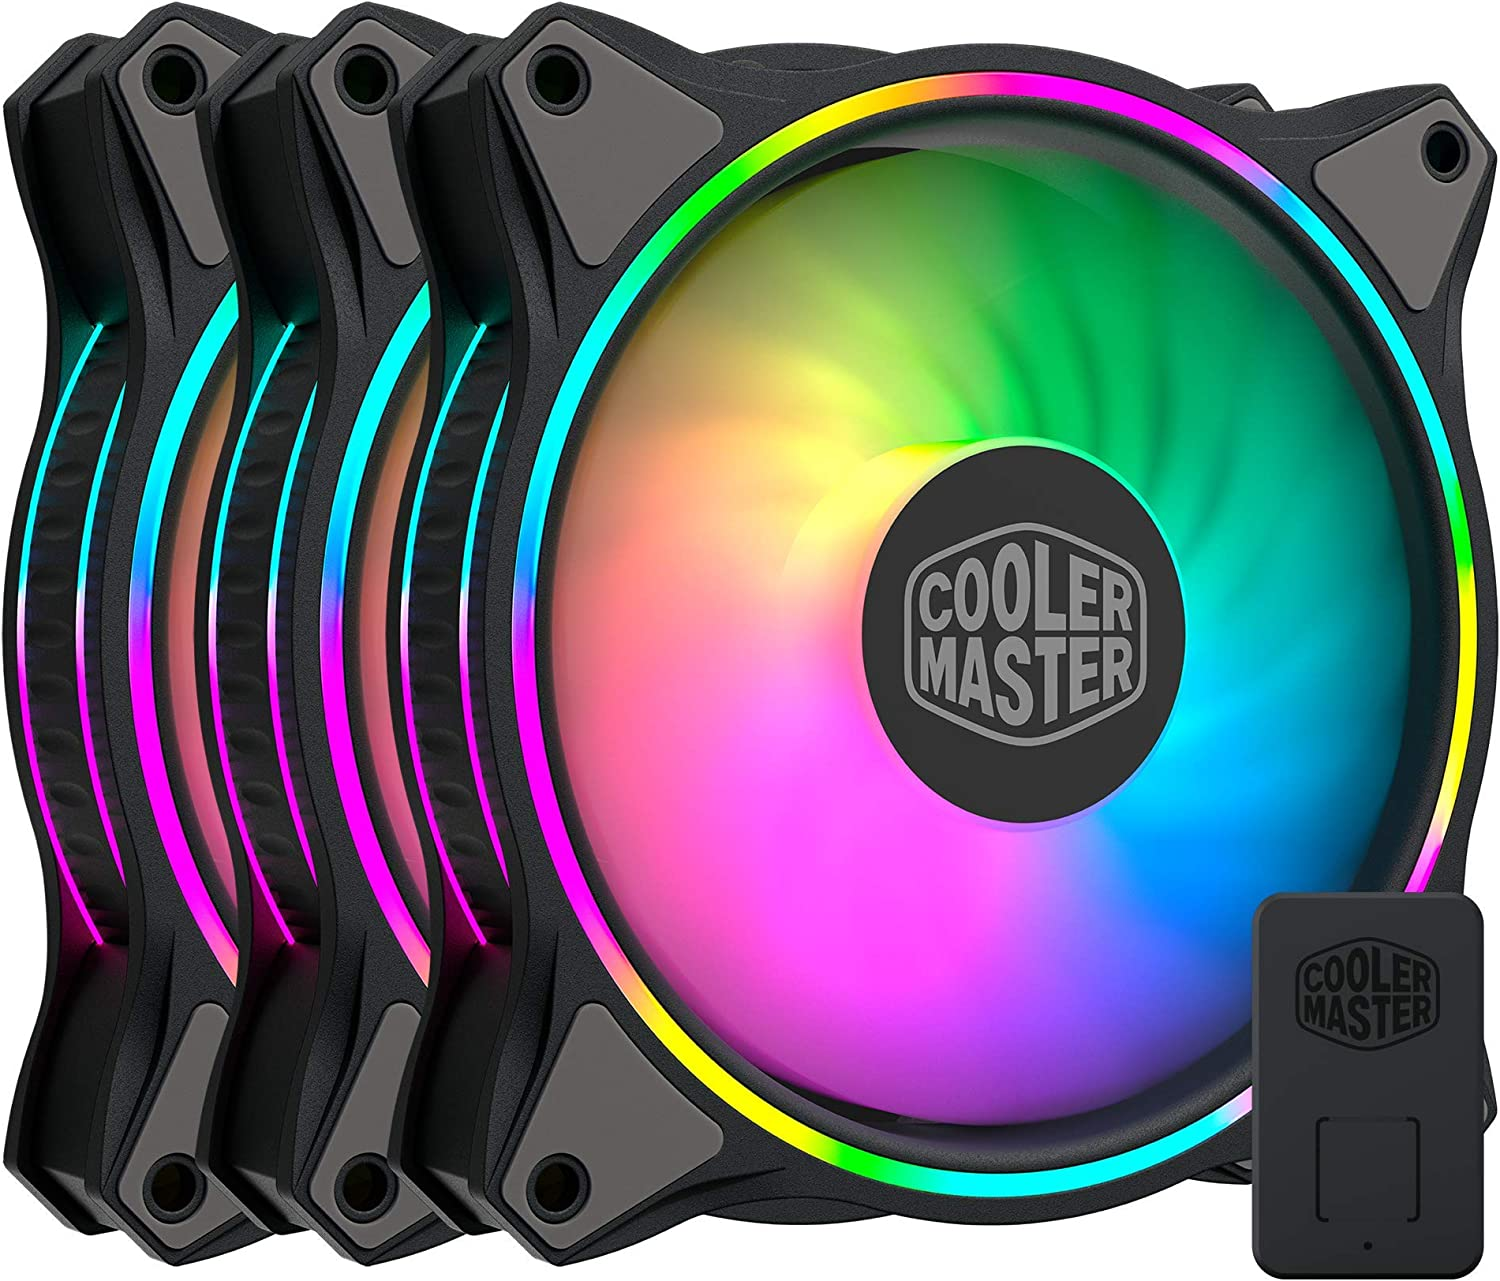 Cooler Master MasterFan MF120 Halo DuoRing Addressable RGB Lighting 120mm 3 Pack with IndependentlyControlled LEDs Absorbing Rubber Pads PWM Static Pr at Kapruka Online for specialGifts